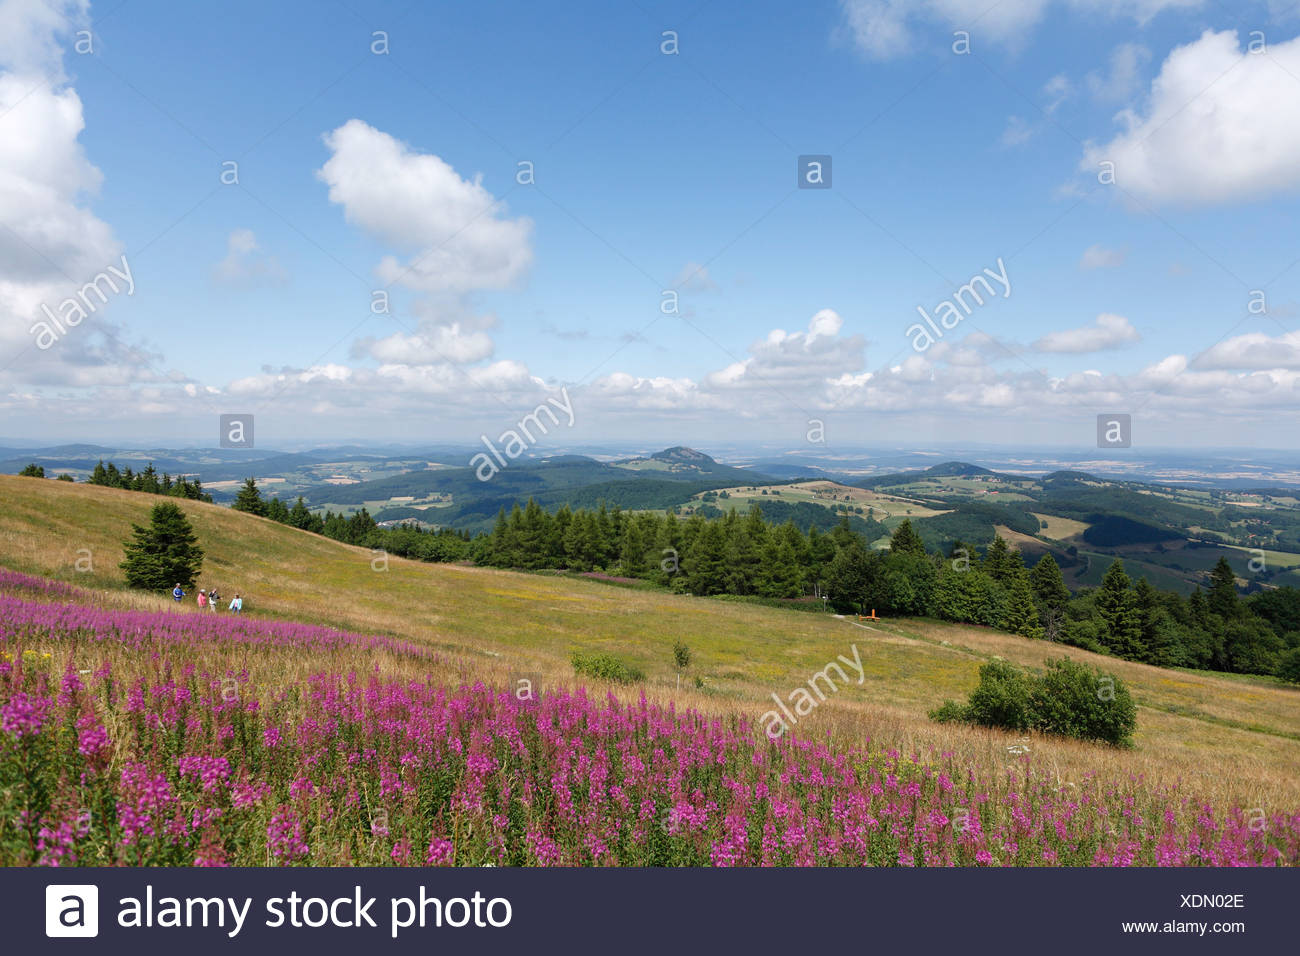 View from the Wasserkuppe plateau, lookin northwest, with the pink blossoms of Fireweed or Rosebay Willowherb (Epilobium angust Stock Photo